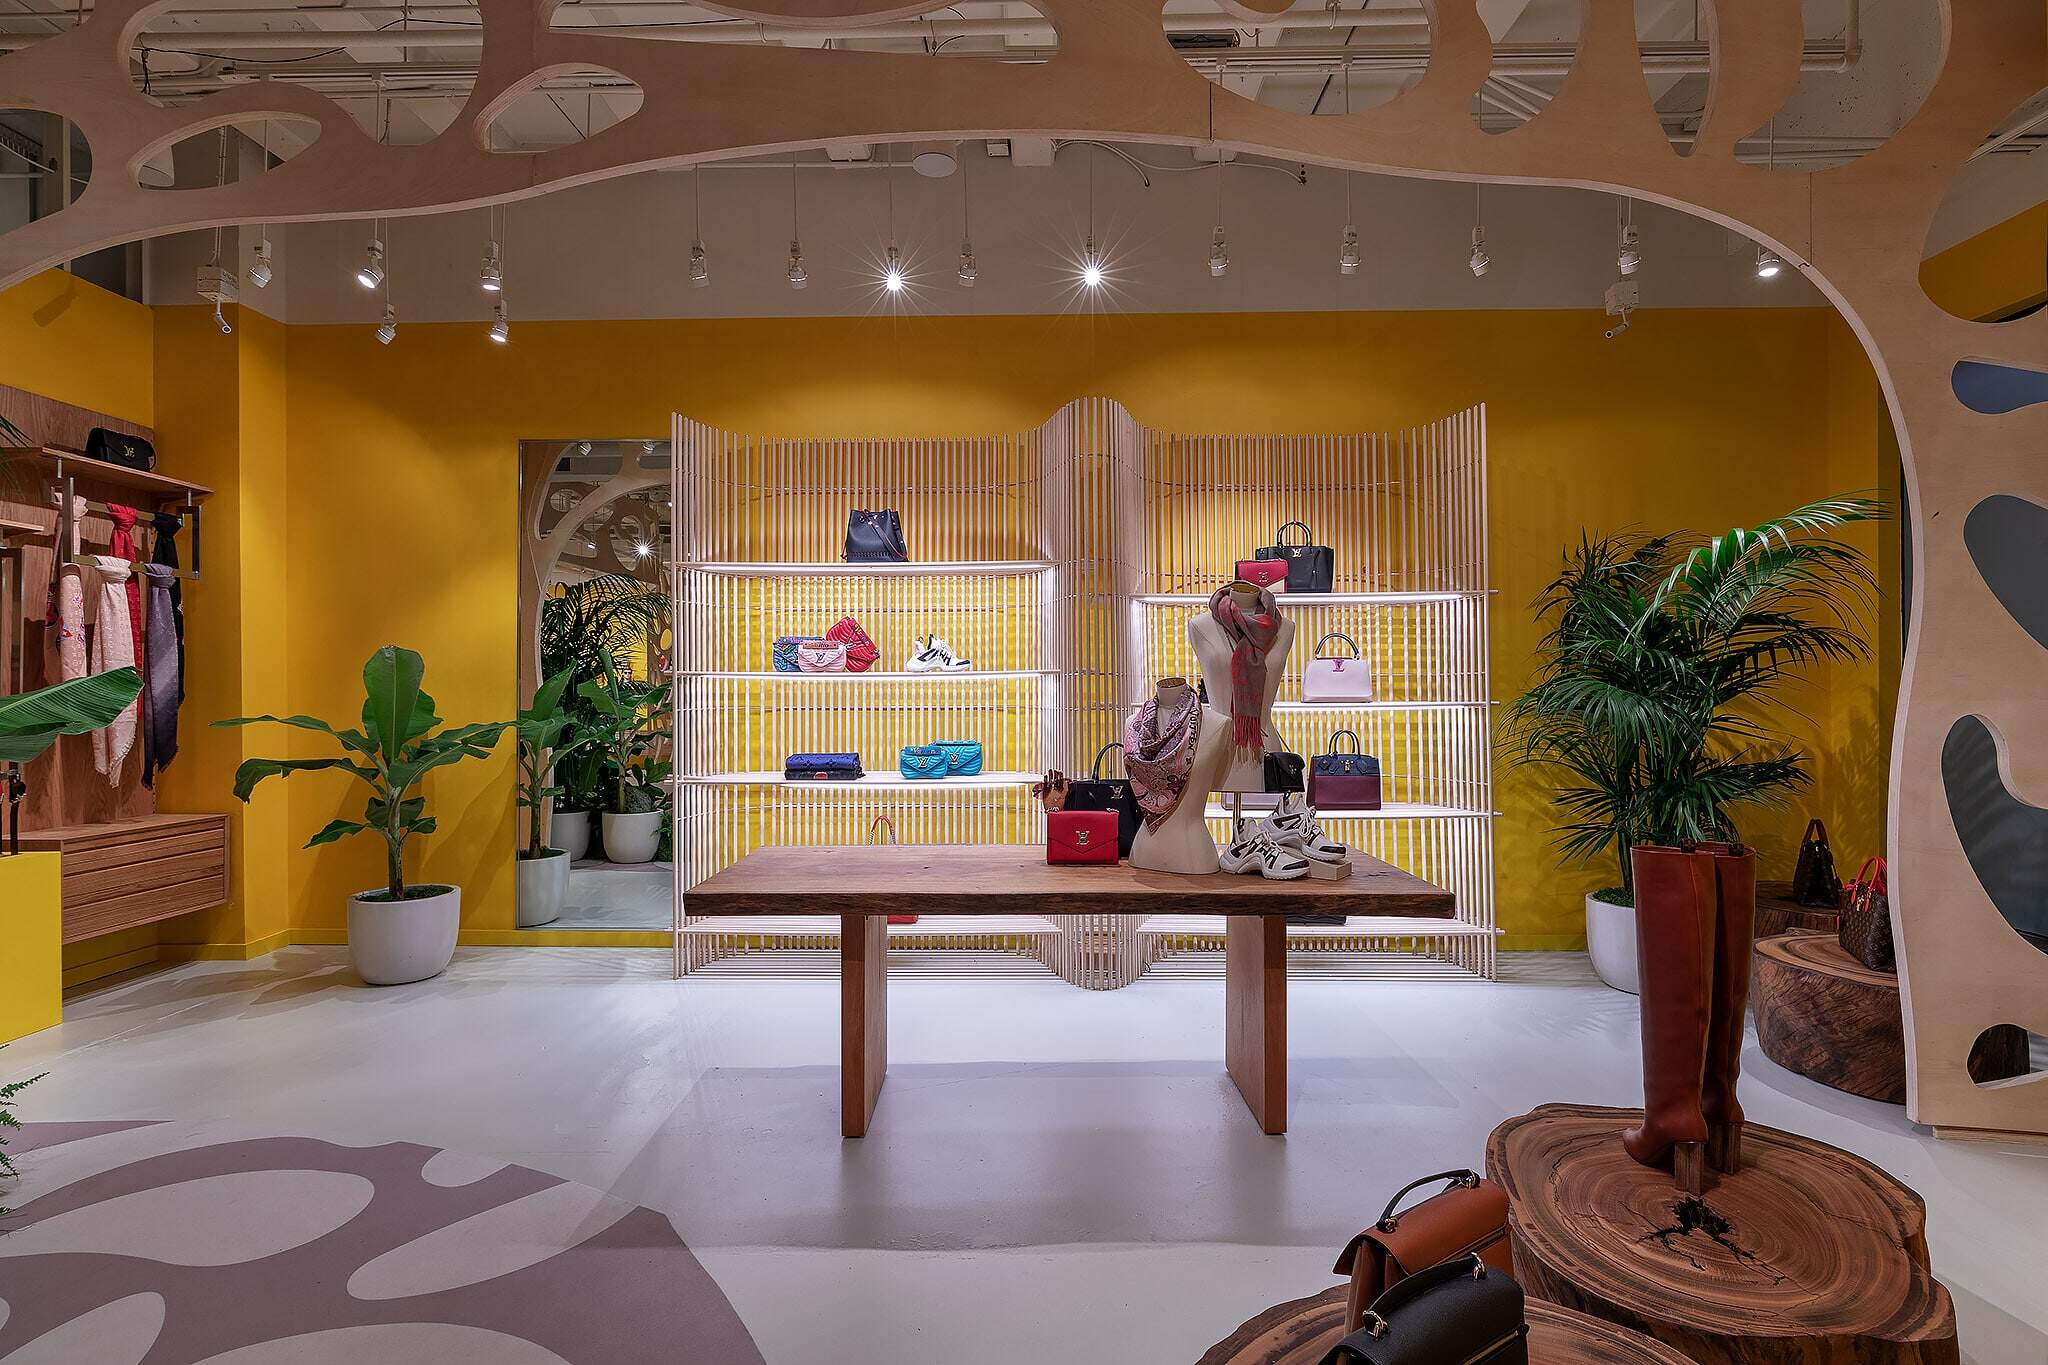 Louis Vuitton Royal Hawaiian2018-10-21 007 copy